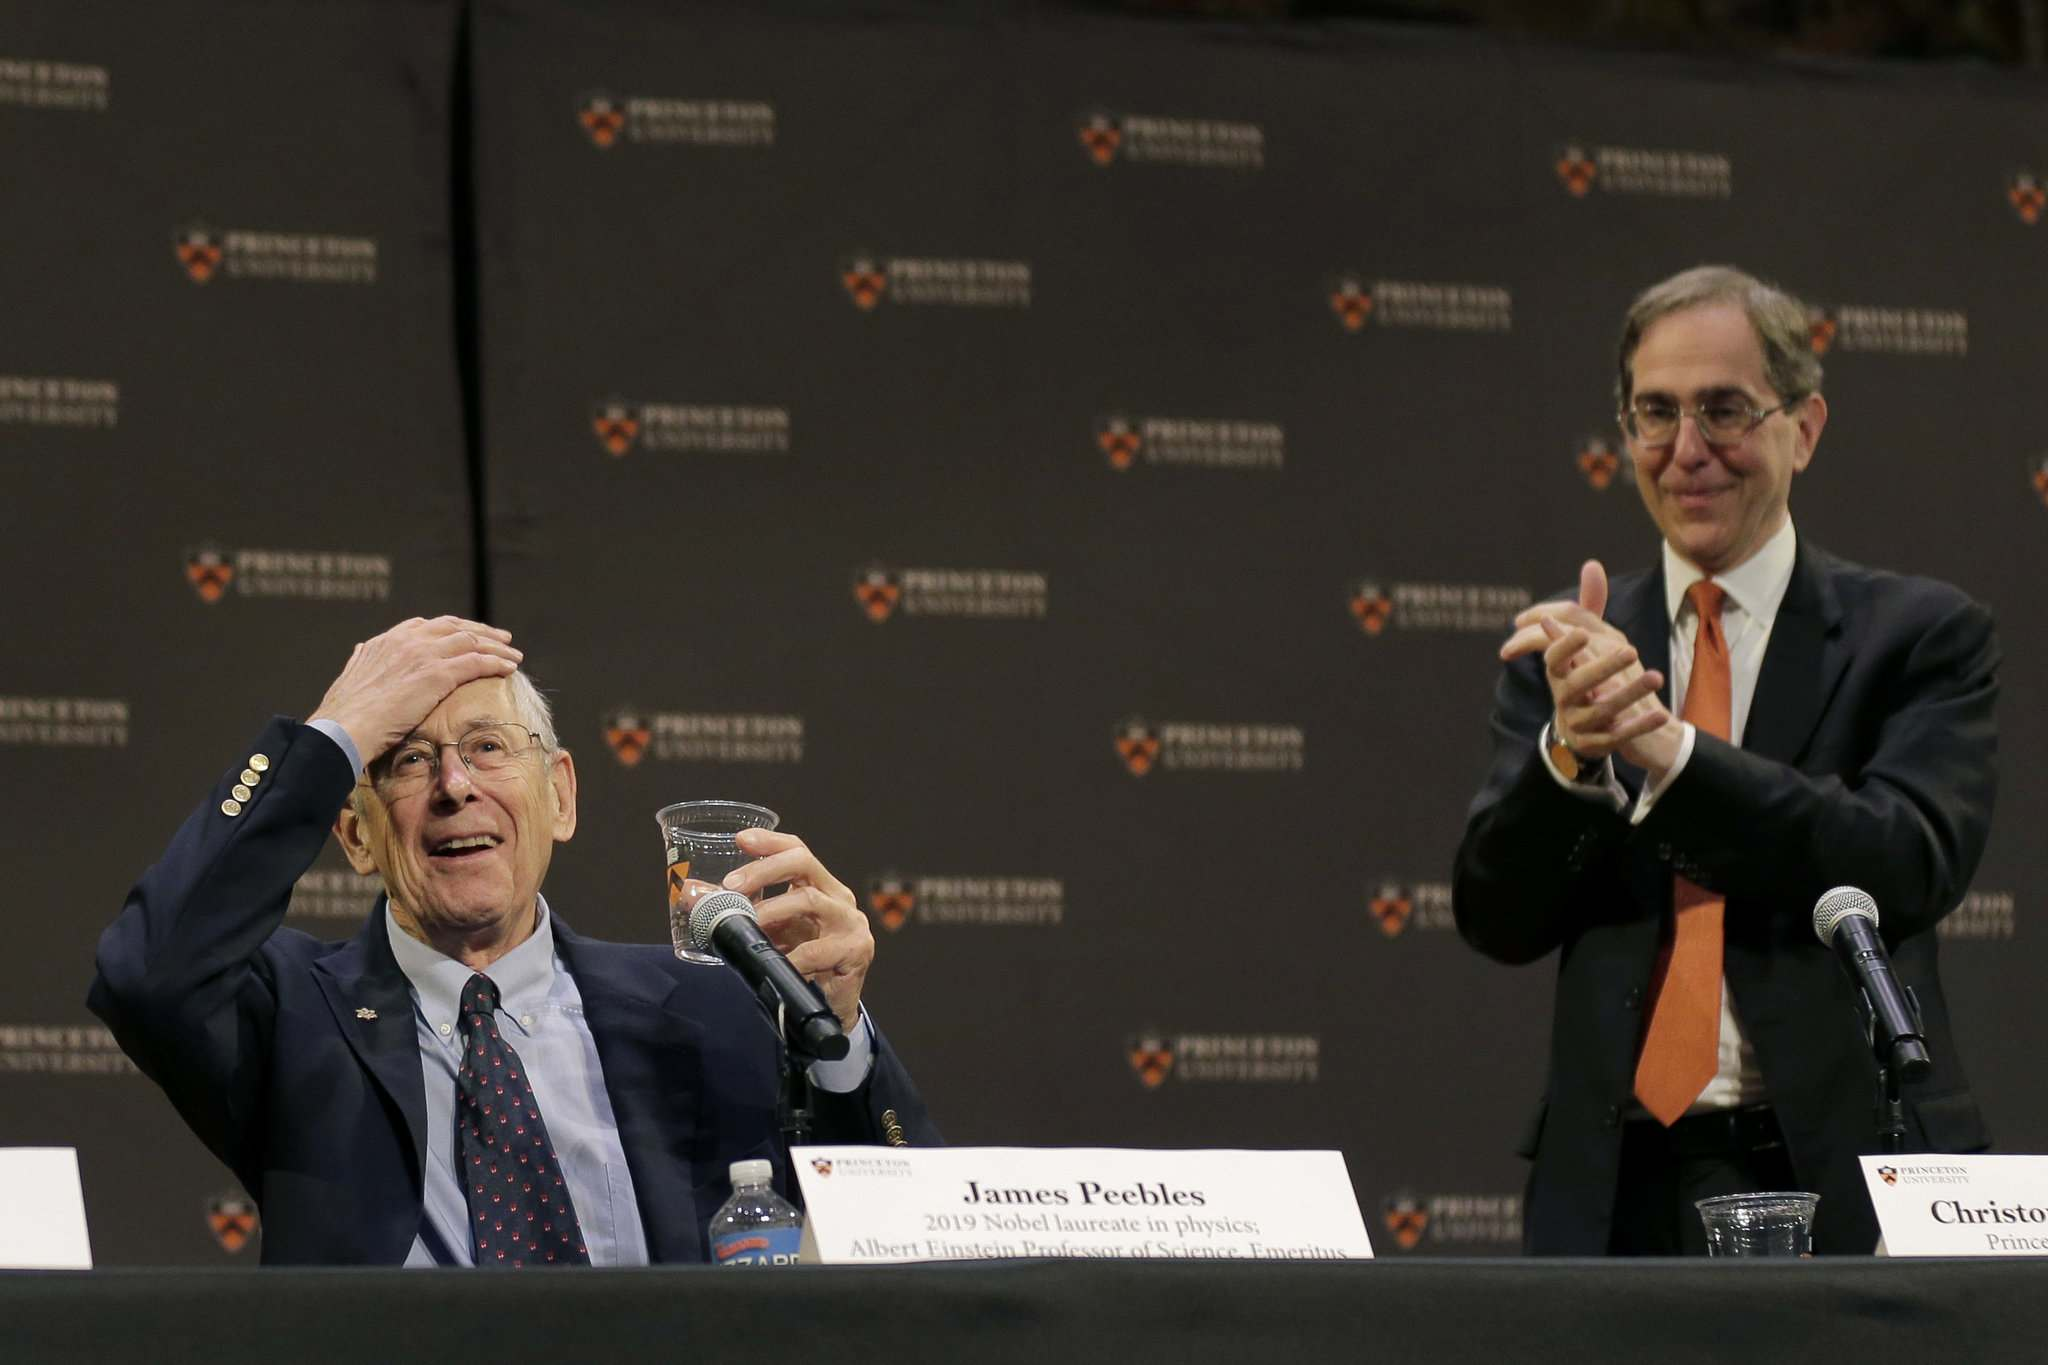 James Peebles, left, reacts as people applaud, including Princeton University president Christopher Eisgruber, at a news conference at Princeton University in Princeton, N.J.Tuesday morning. (Seth Wenig / The Associated Press(